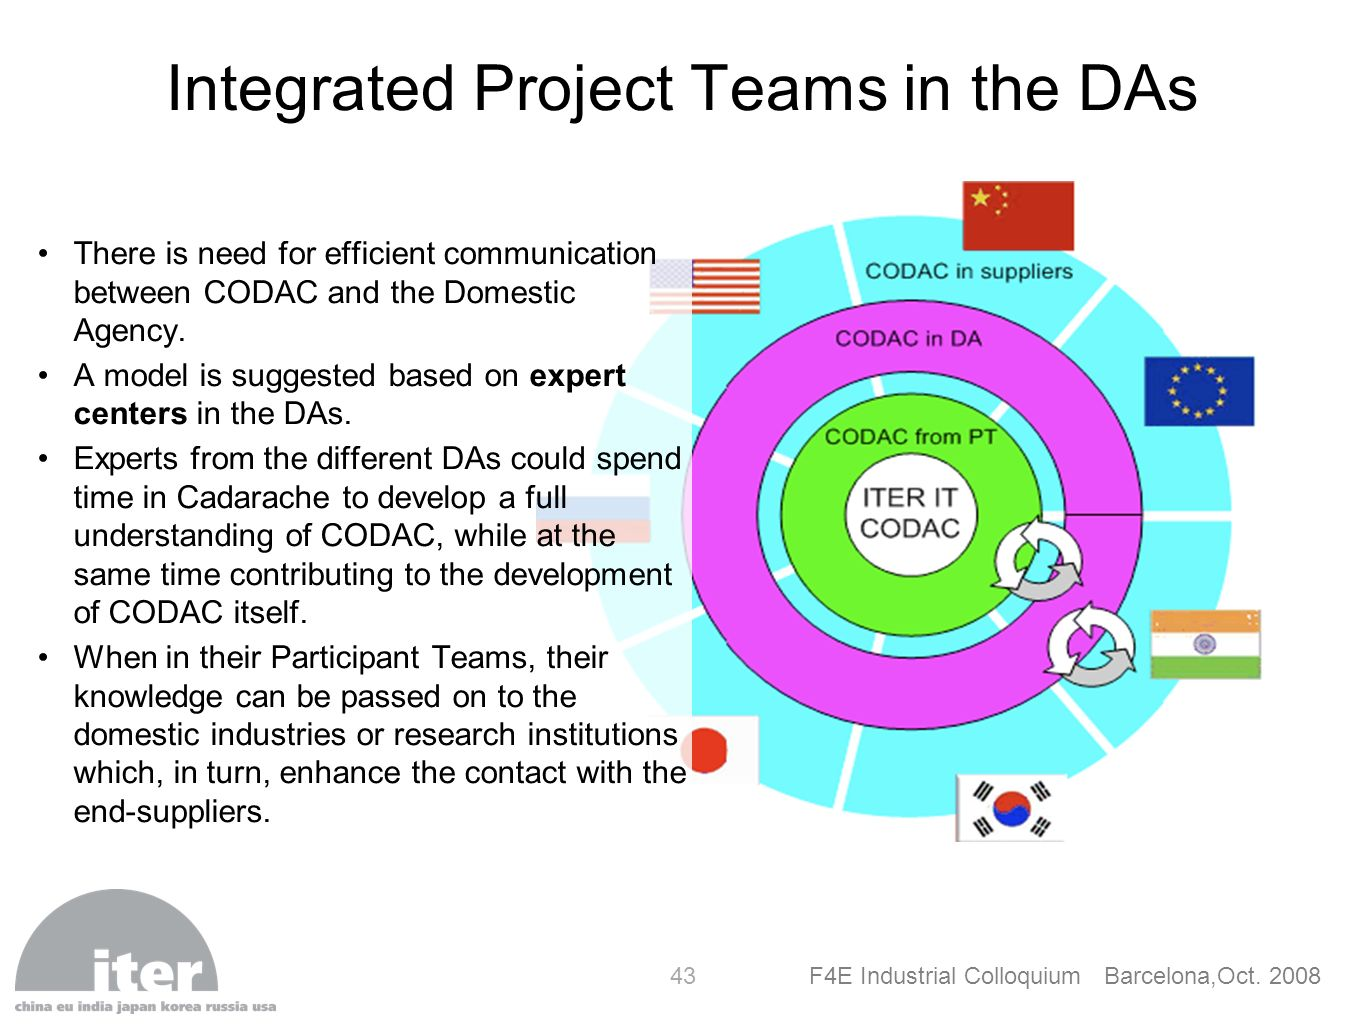 F4E Industrial Colloquium Barcelona,Oct. 2008 43 Integrated Project Teams in the DAs There is need for efficient communication between CODAC and the D